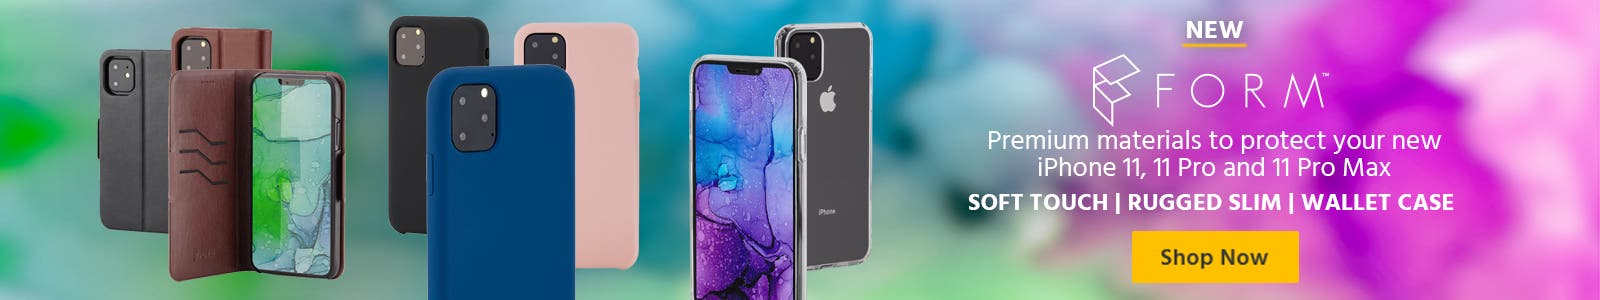 New, FORM, premium materials to protect your new iphone 11, shop now